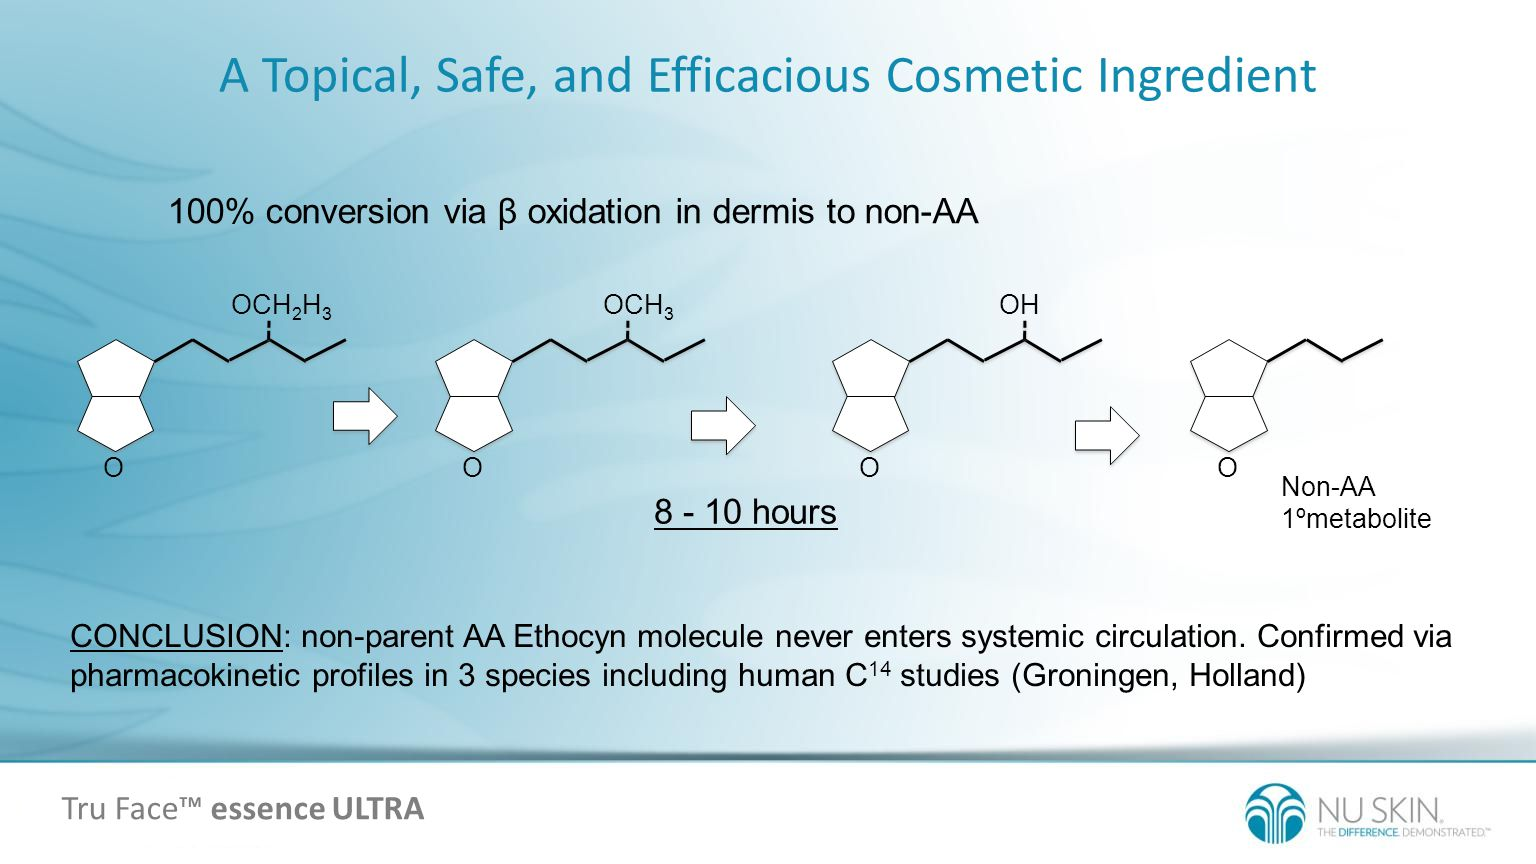 A Topical, Safe, and Efficacious Cosmetic Ingredient